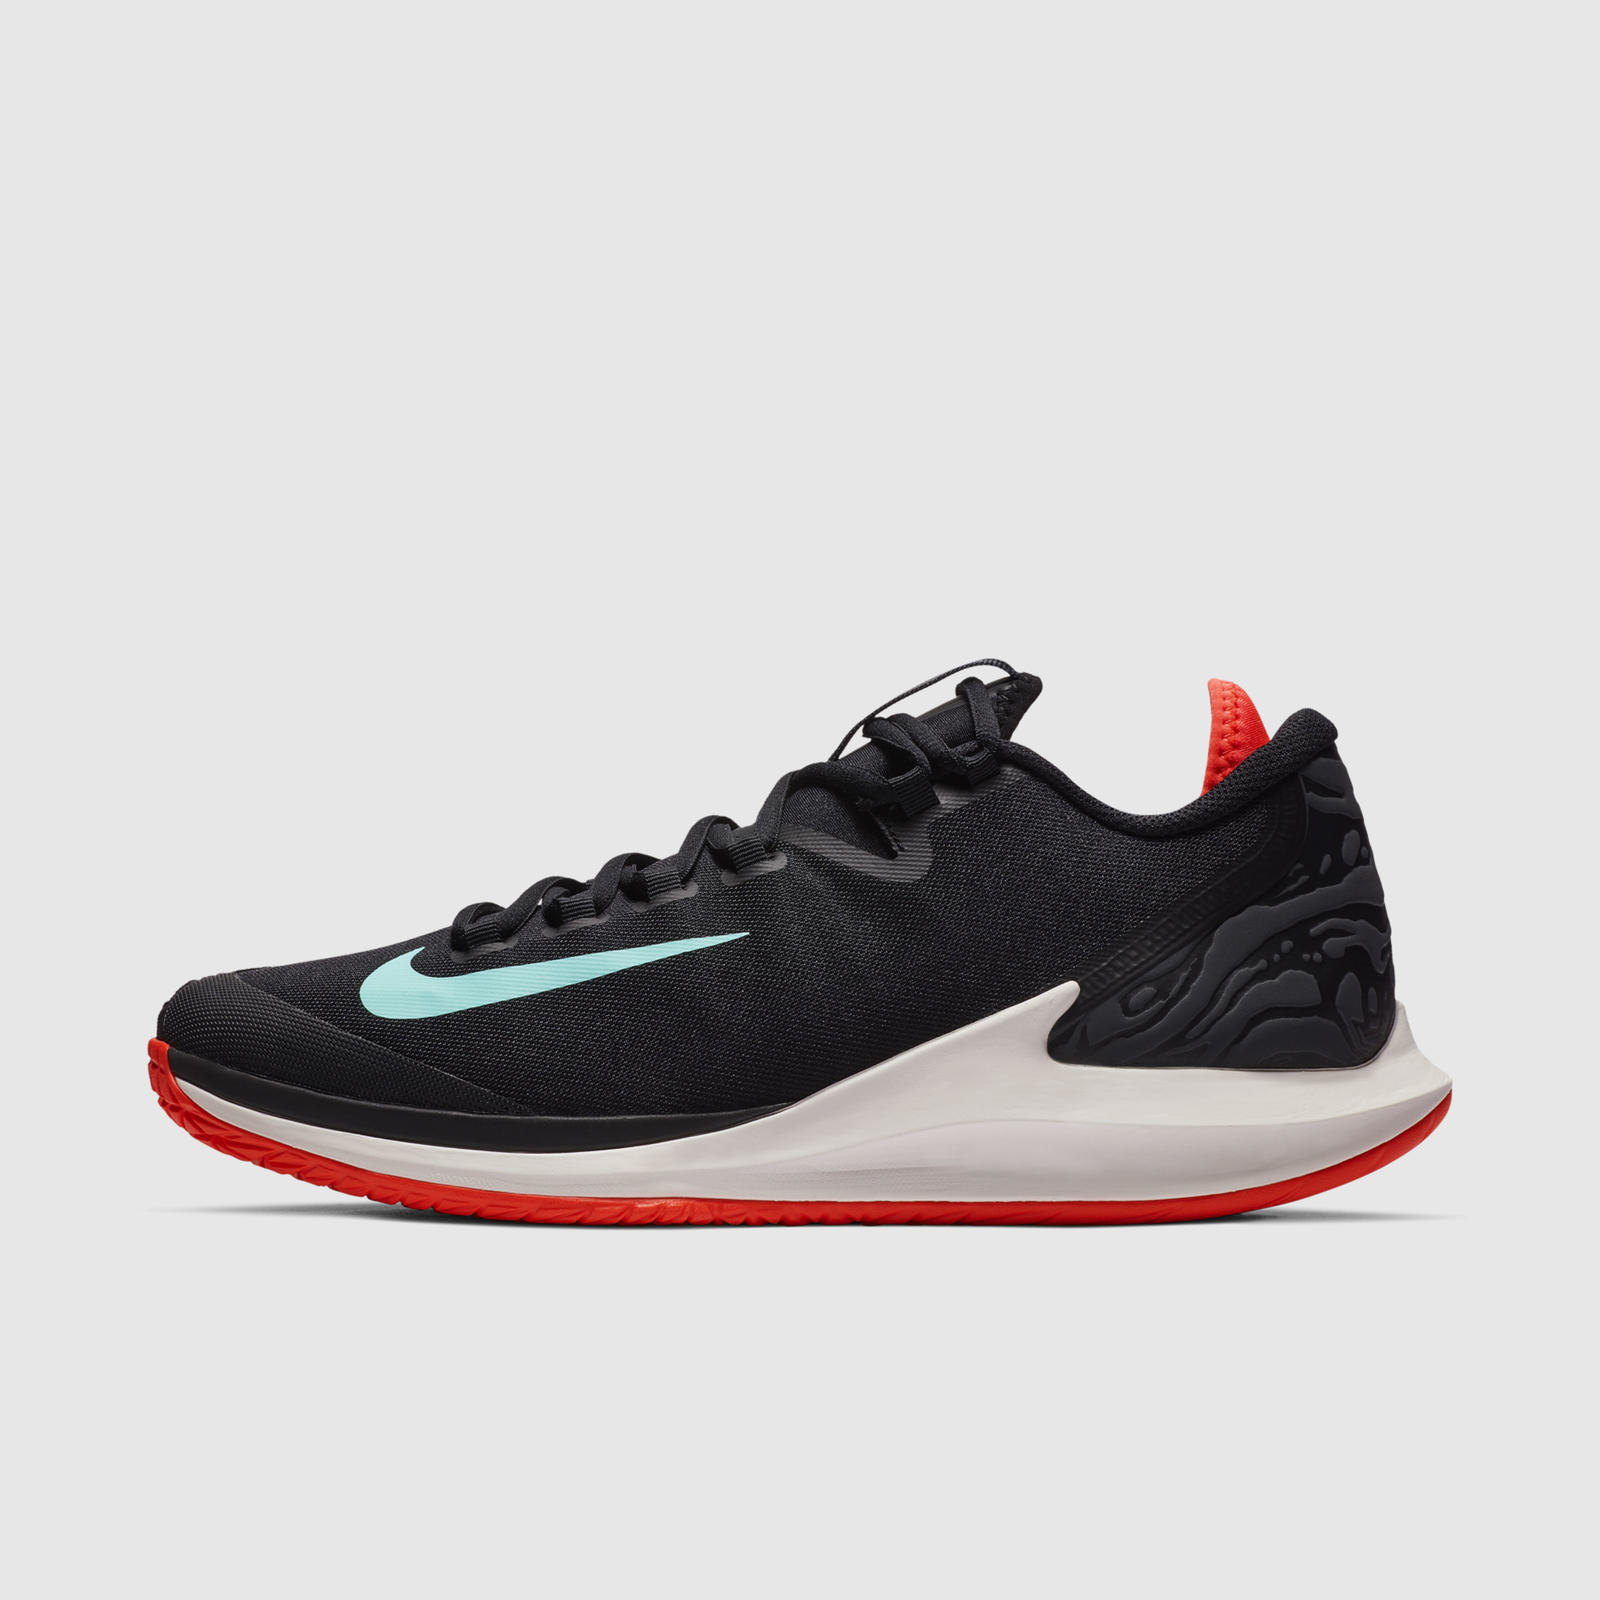 hot sale online dd5aa a24cf Vintage Vibes, Future Fabrics for the NikeCourt Melbourne Collection 2